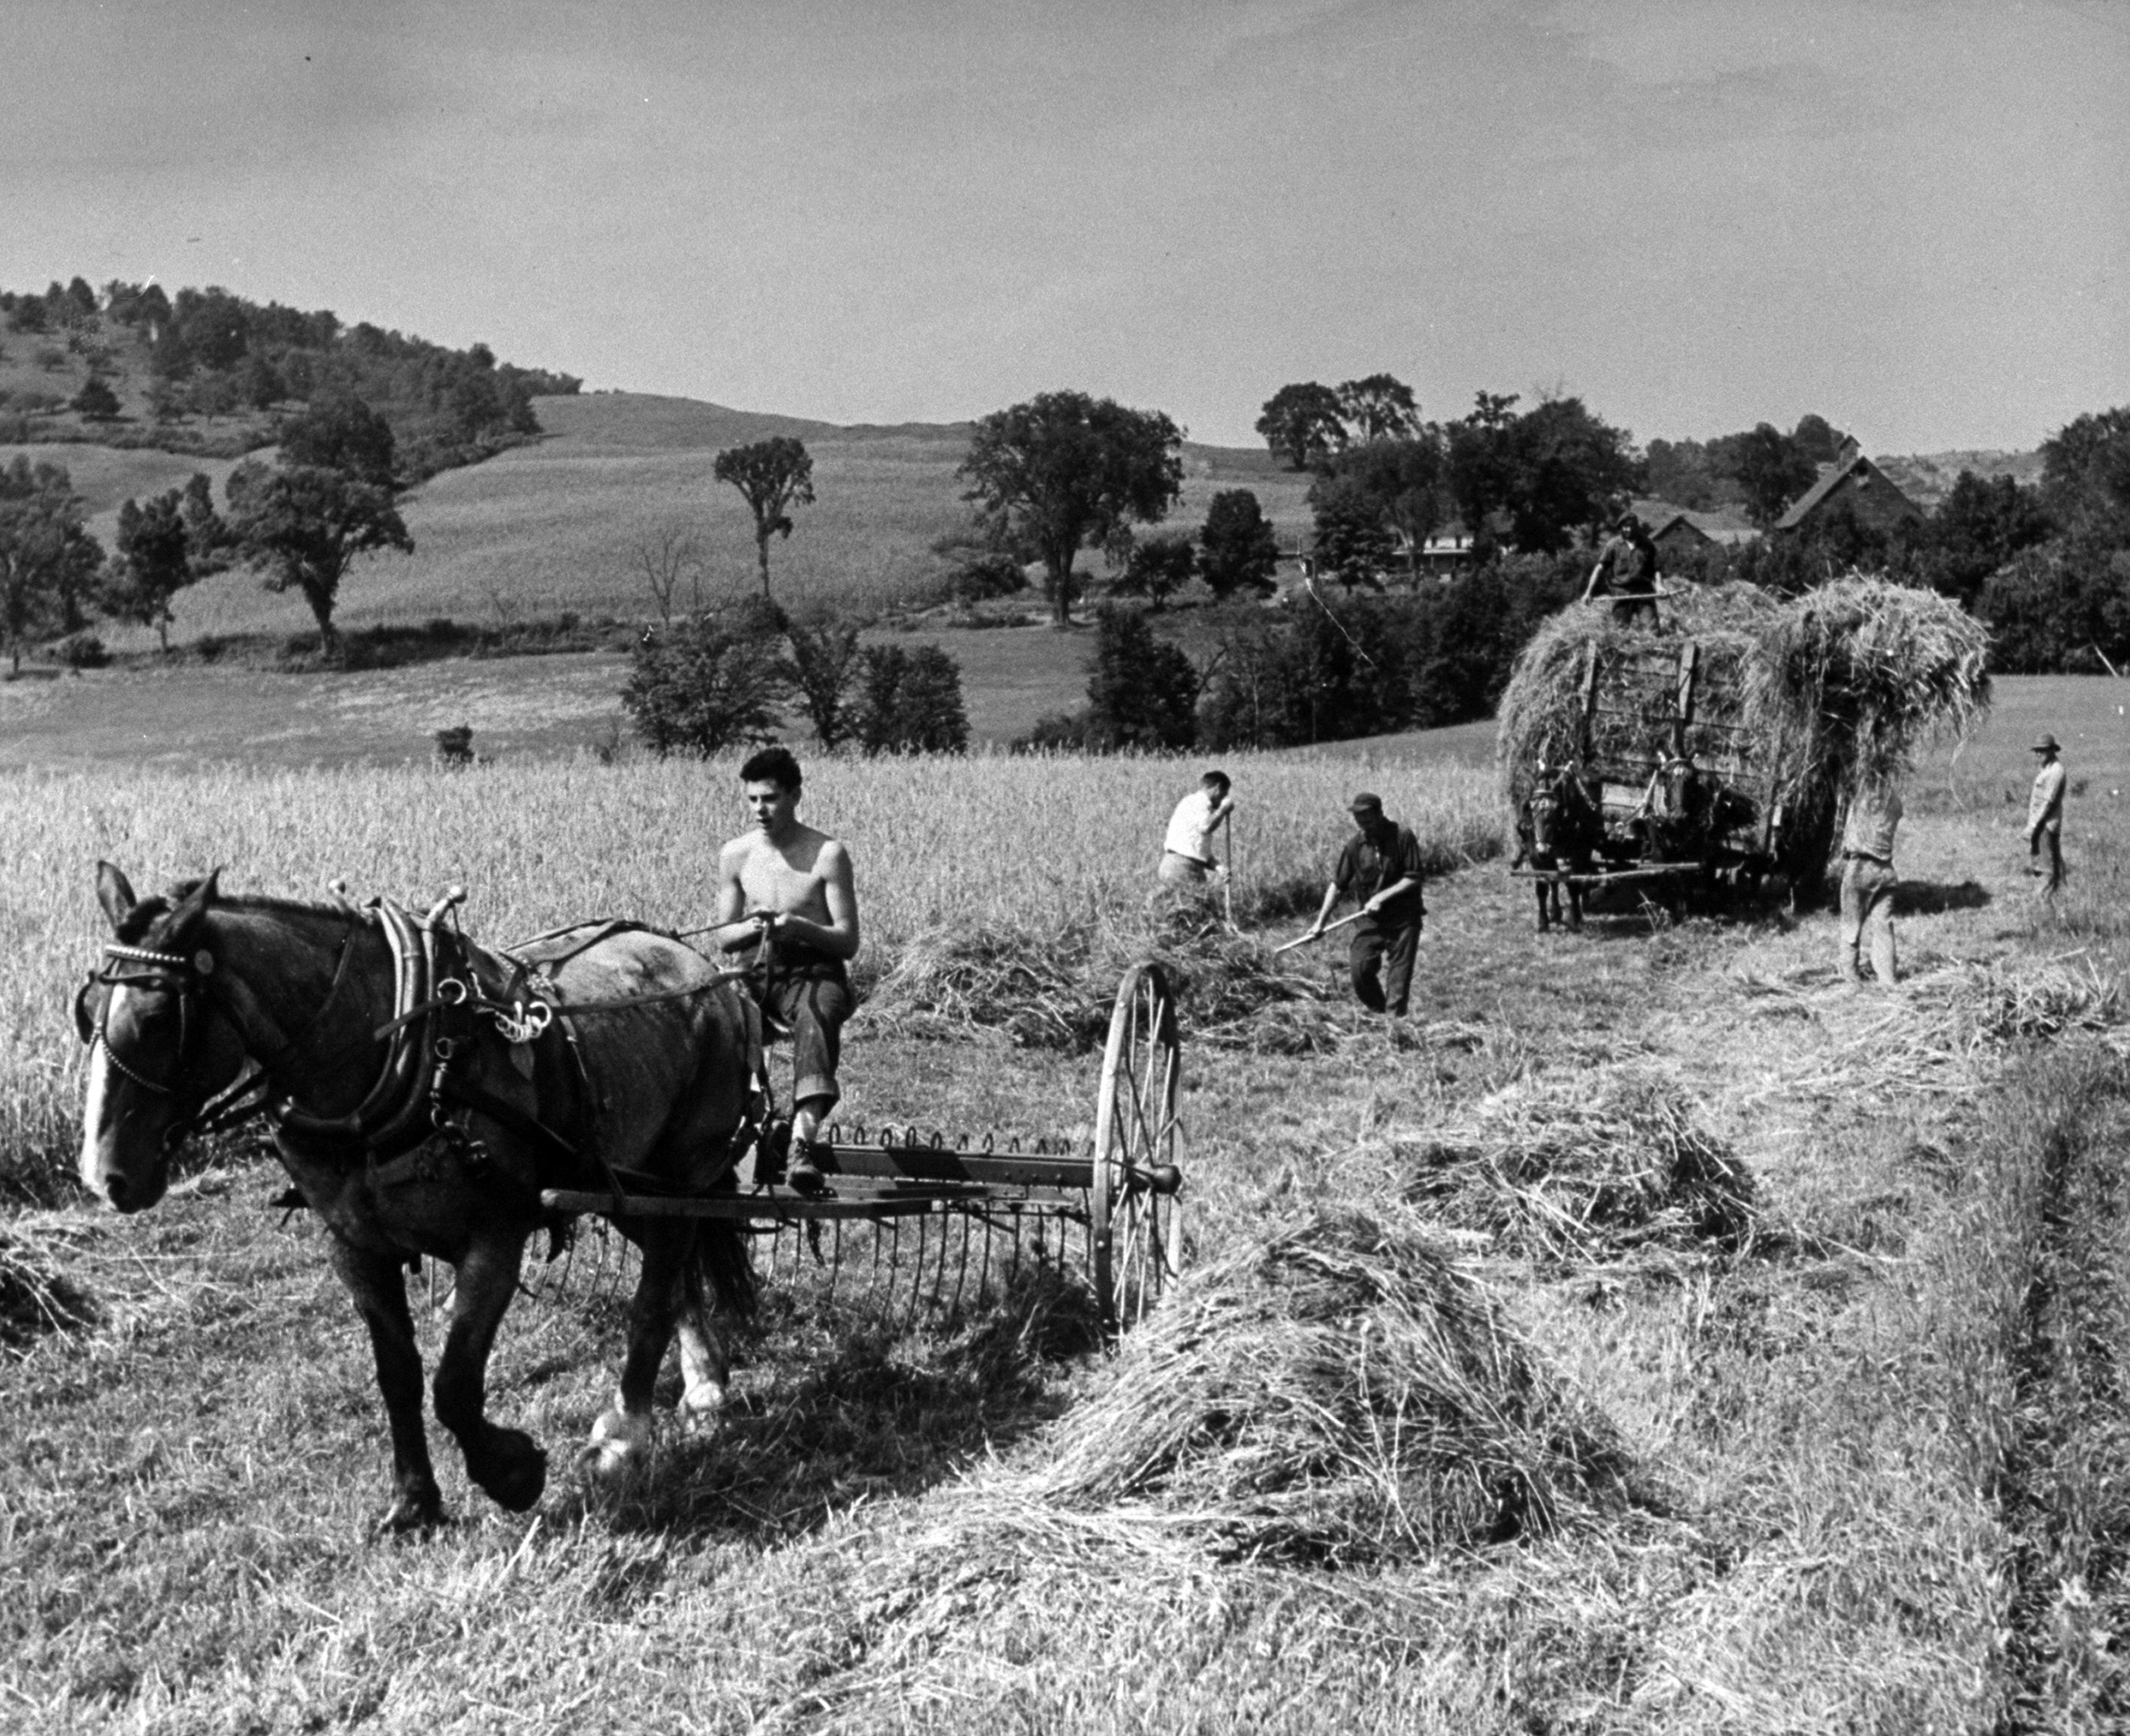 <b>Caption from LIFE.</b> Driving the hay rake on Acuntney Hill Farm at Windsor, Vt. is Dick Sterne, 16, of Hewlett, L.I. During summer months Dick washed more than 40,000 milk bottles.